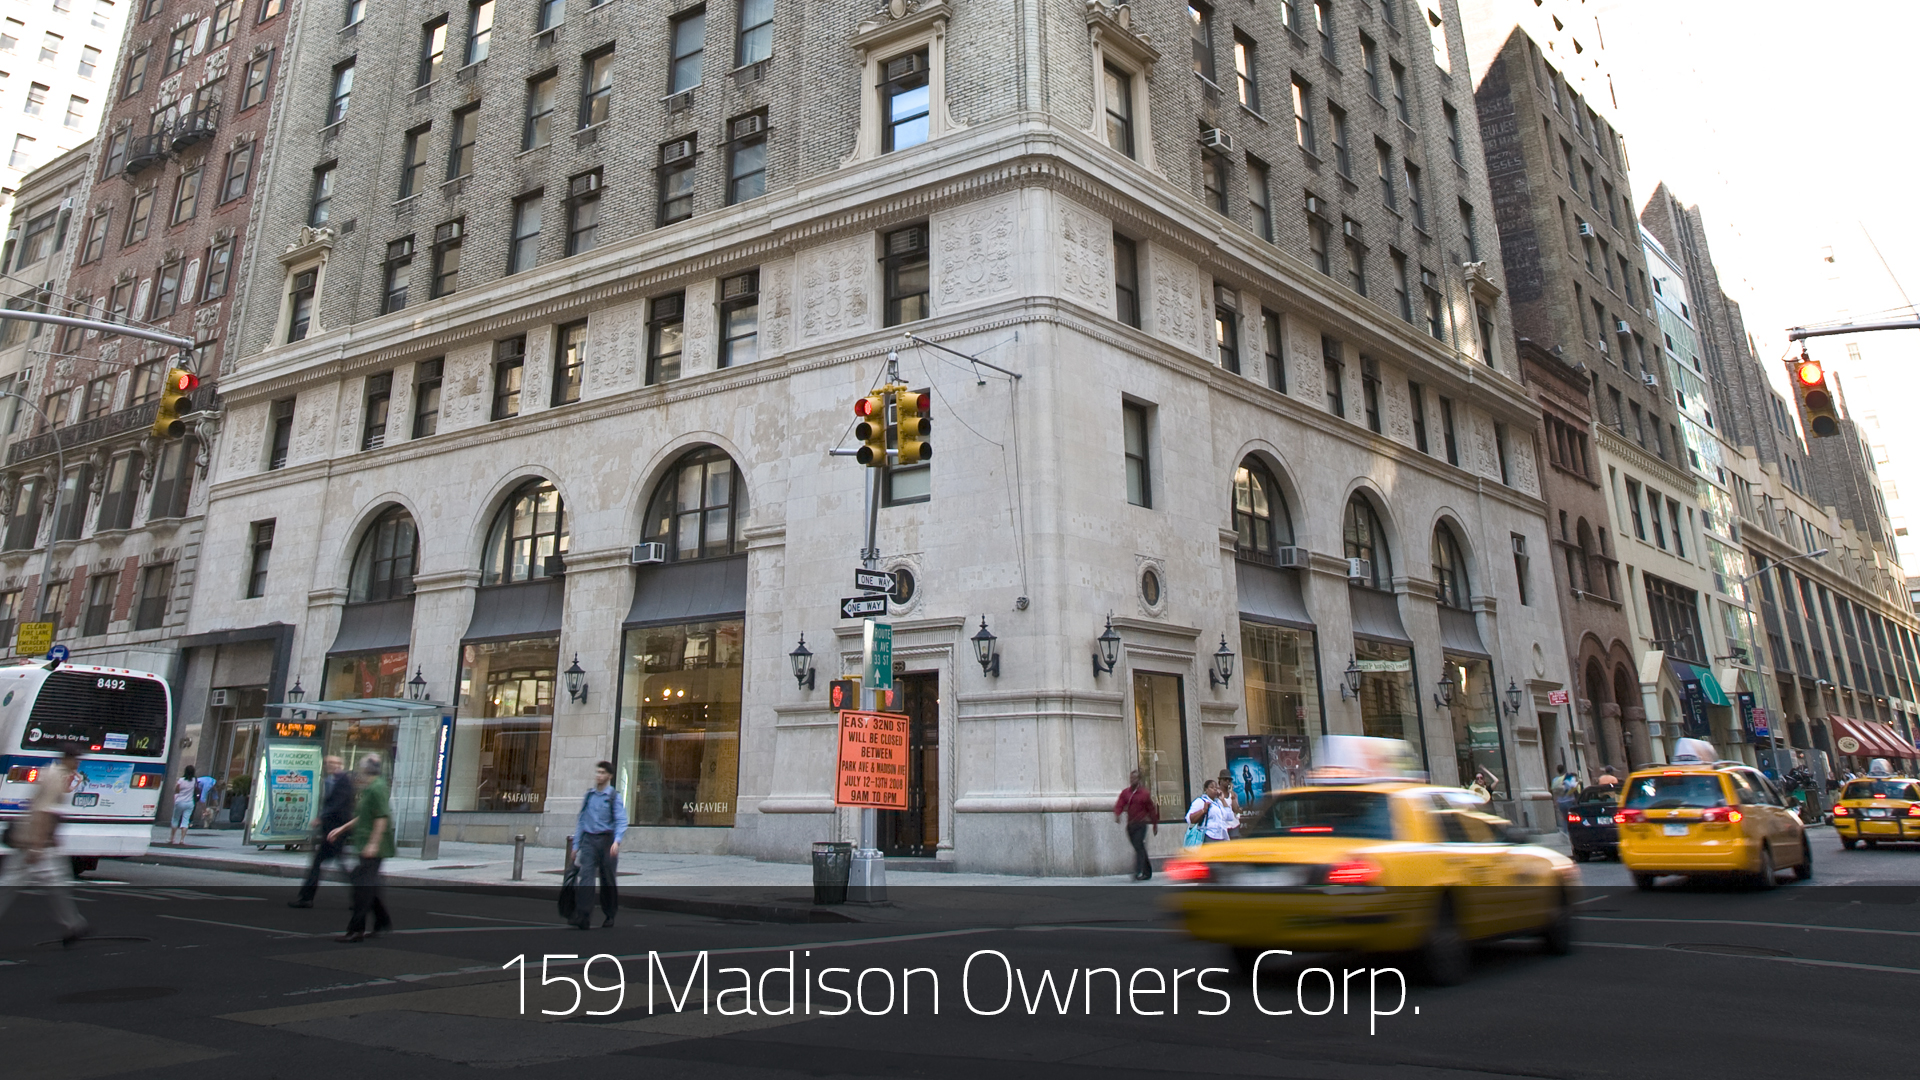 159 madison owners corp